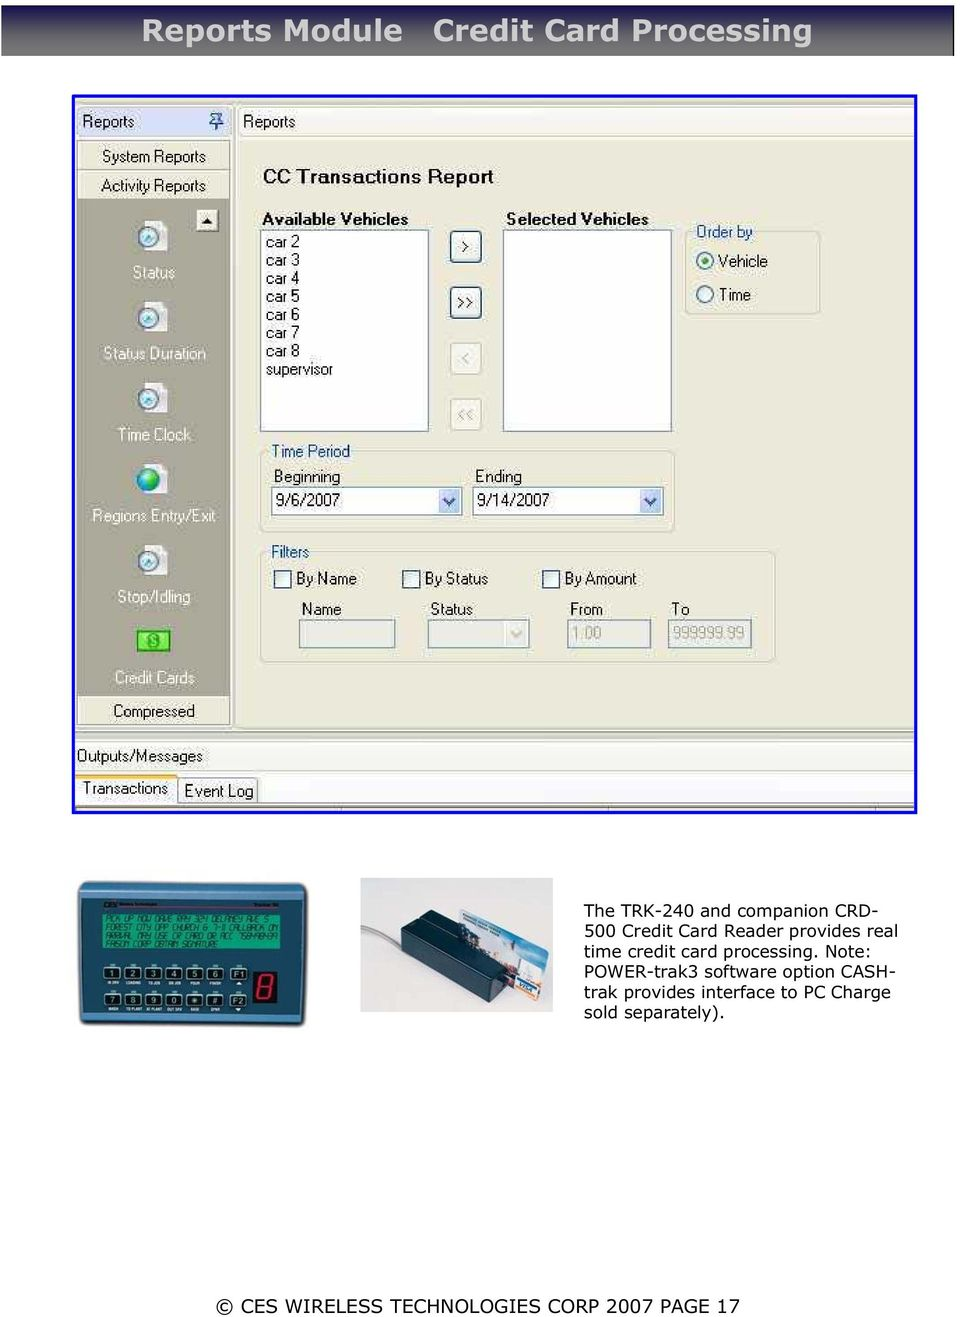 Note: POWER-trak3 software option CASHtrak provides interface to PC